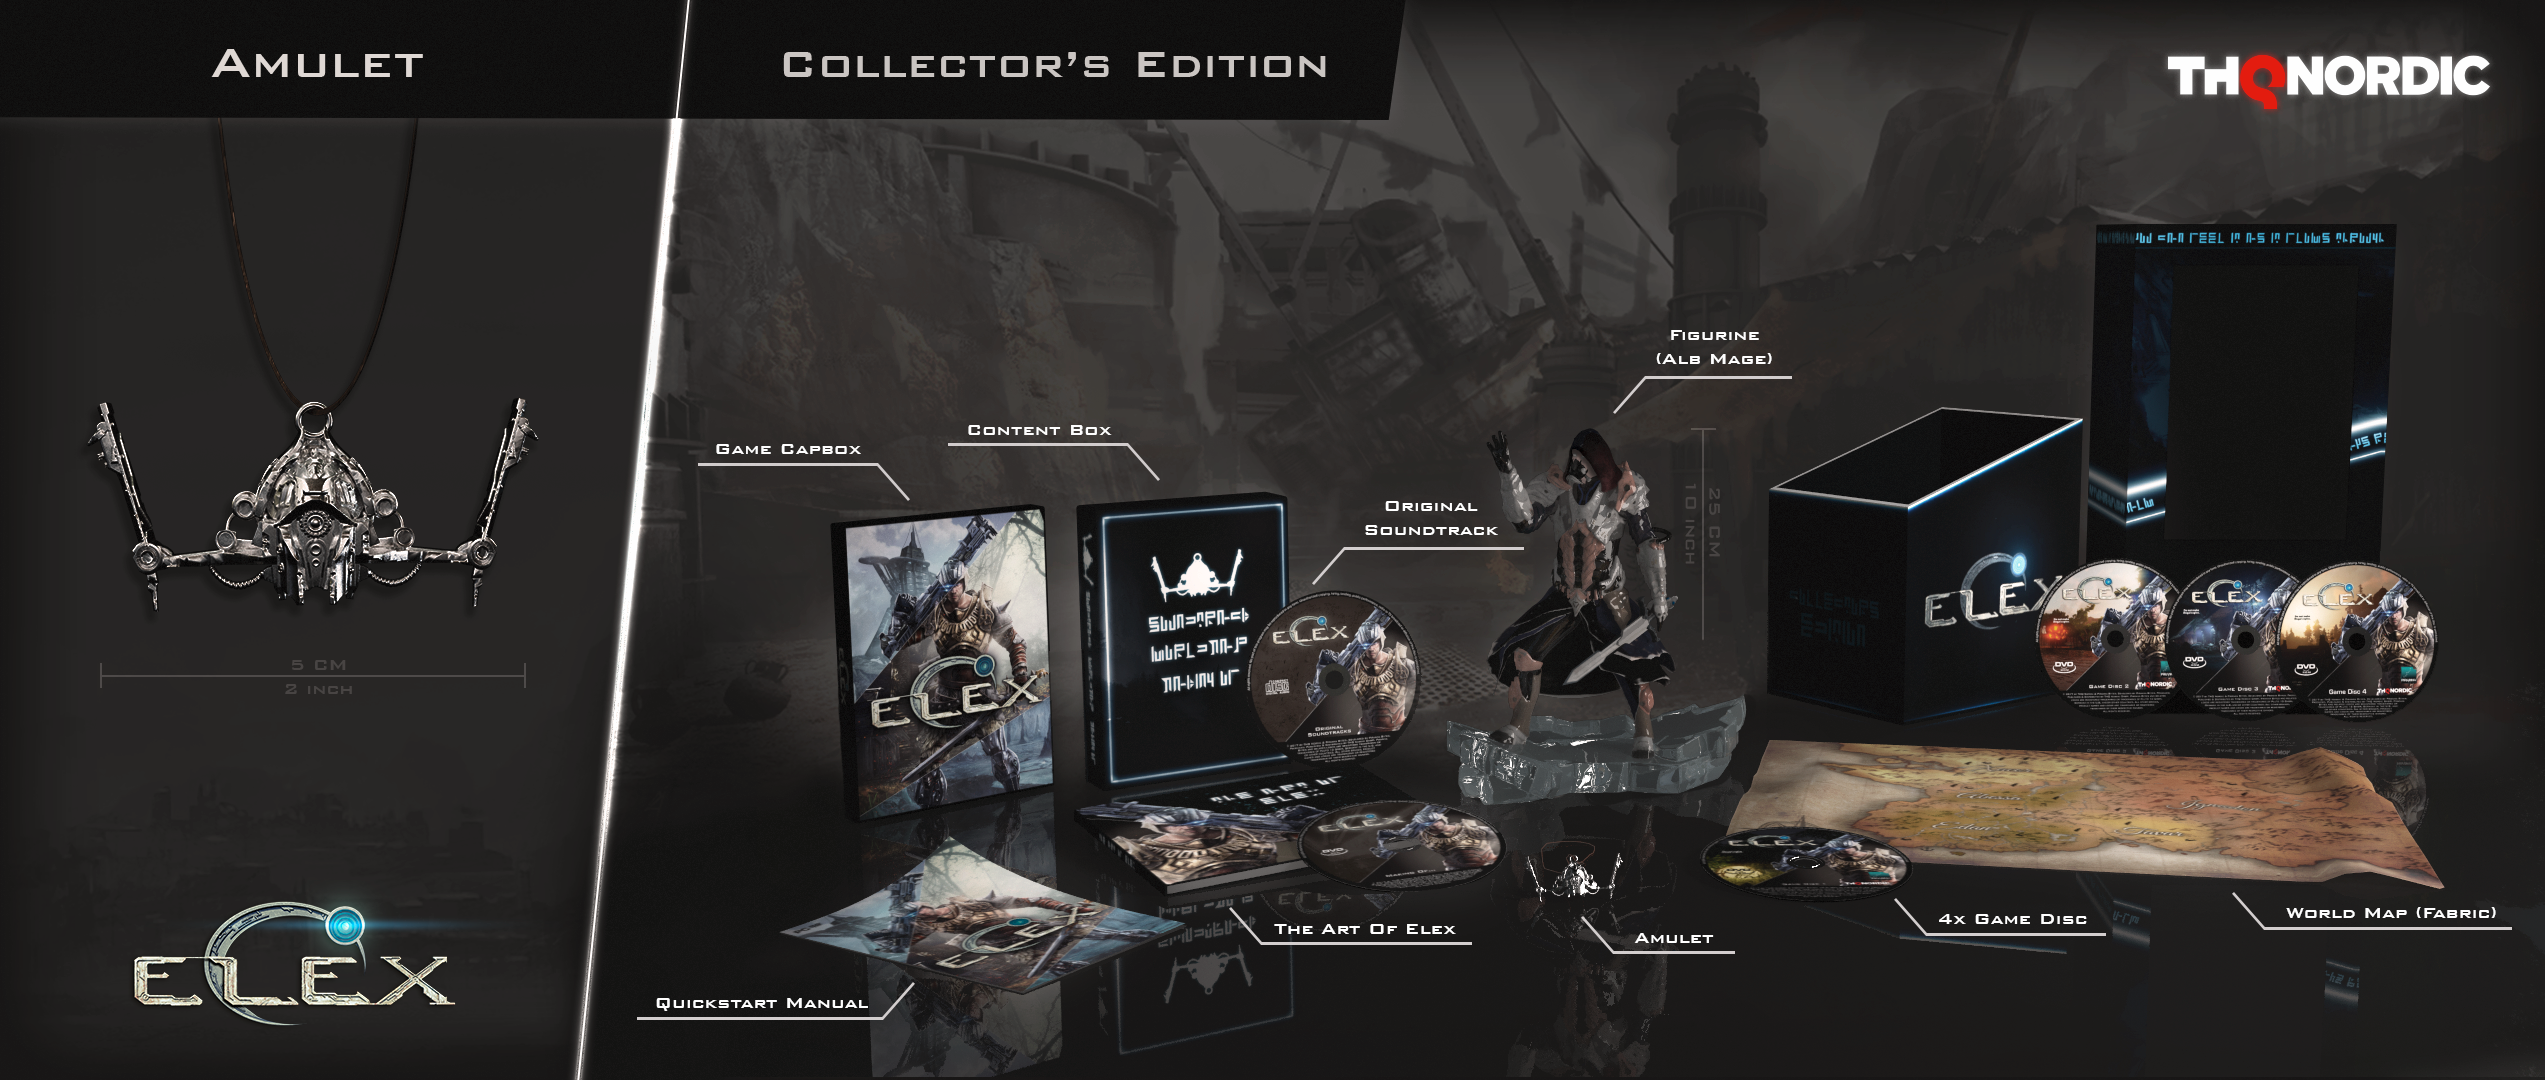 ELEX_Collectors_Edition_content.png